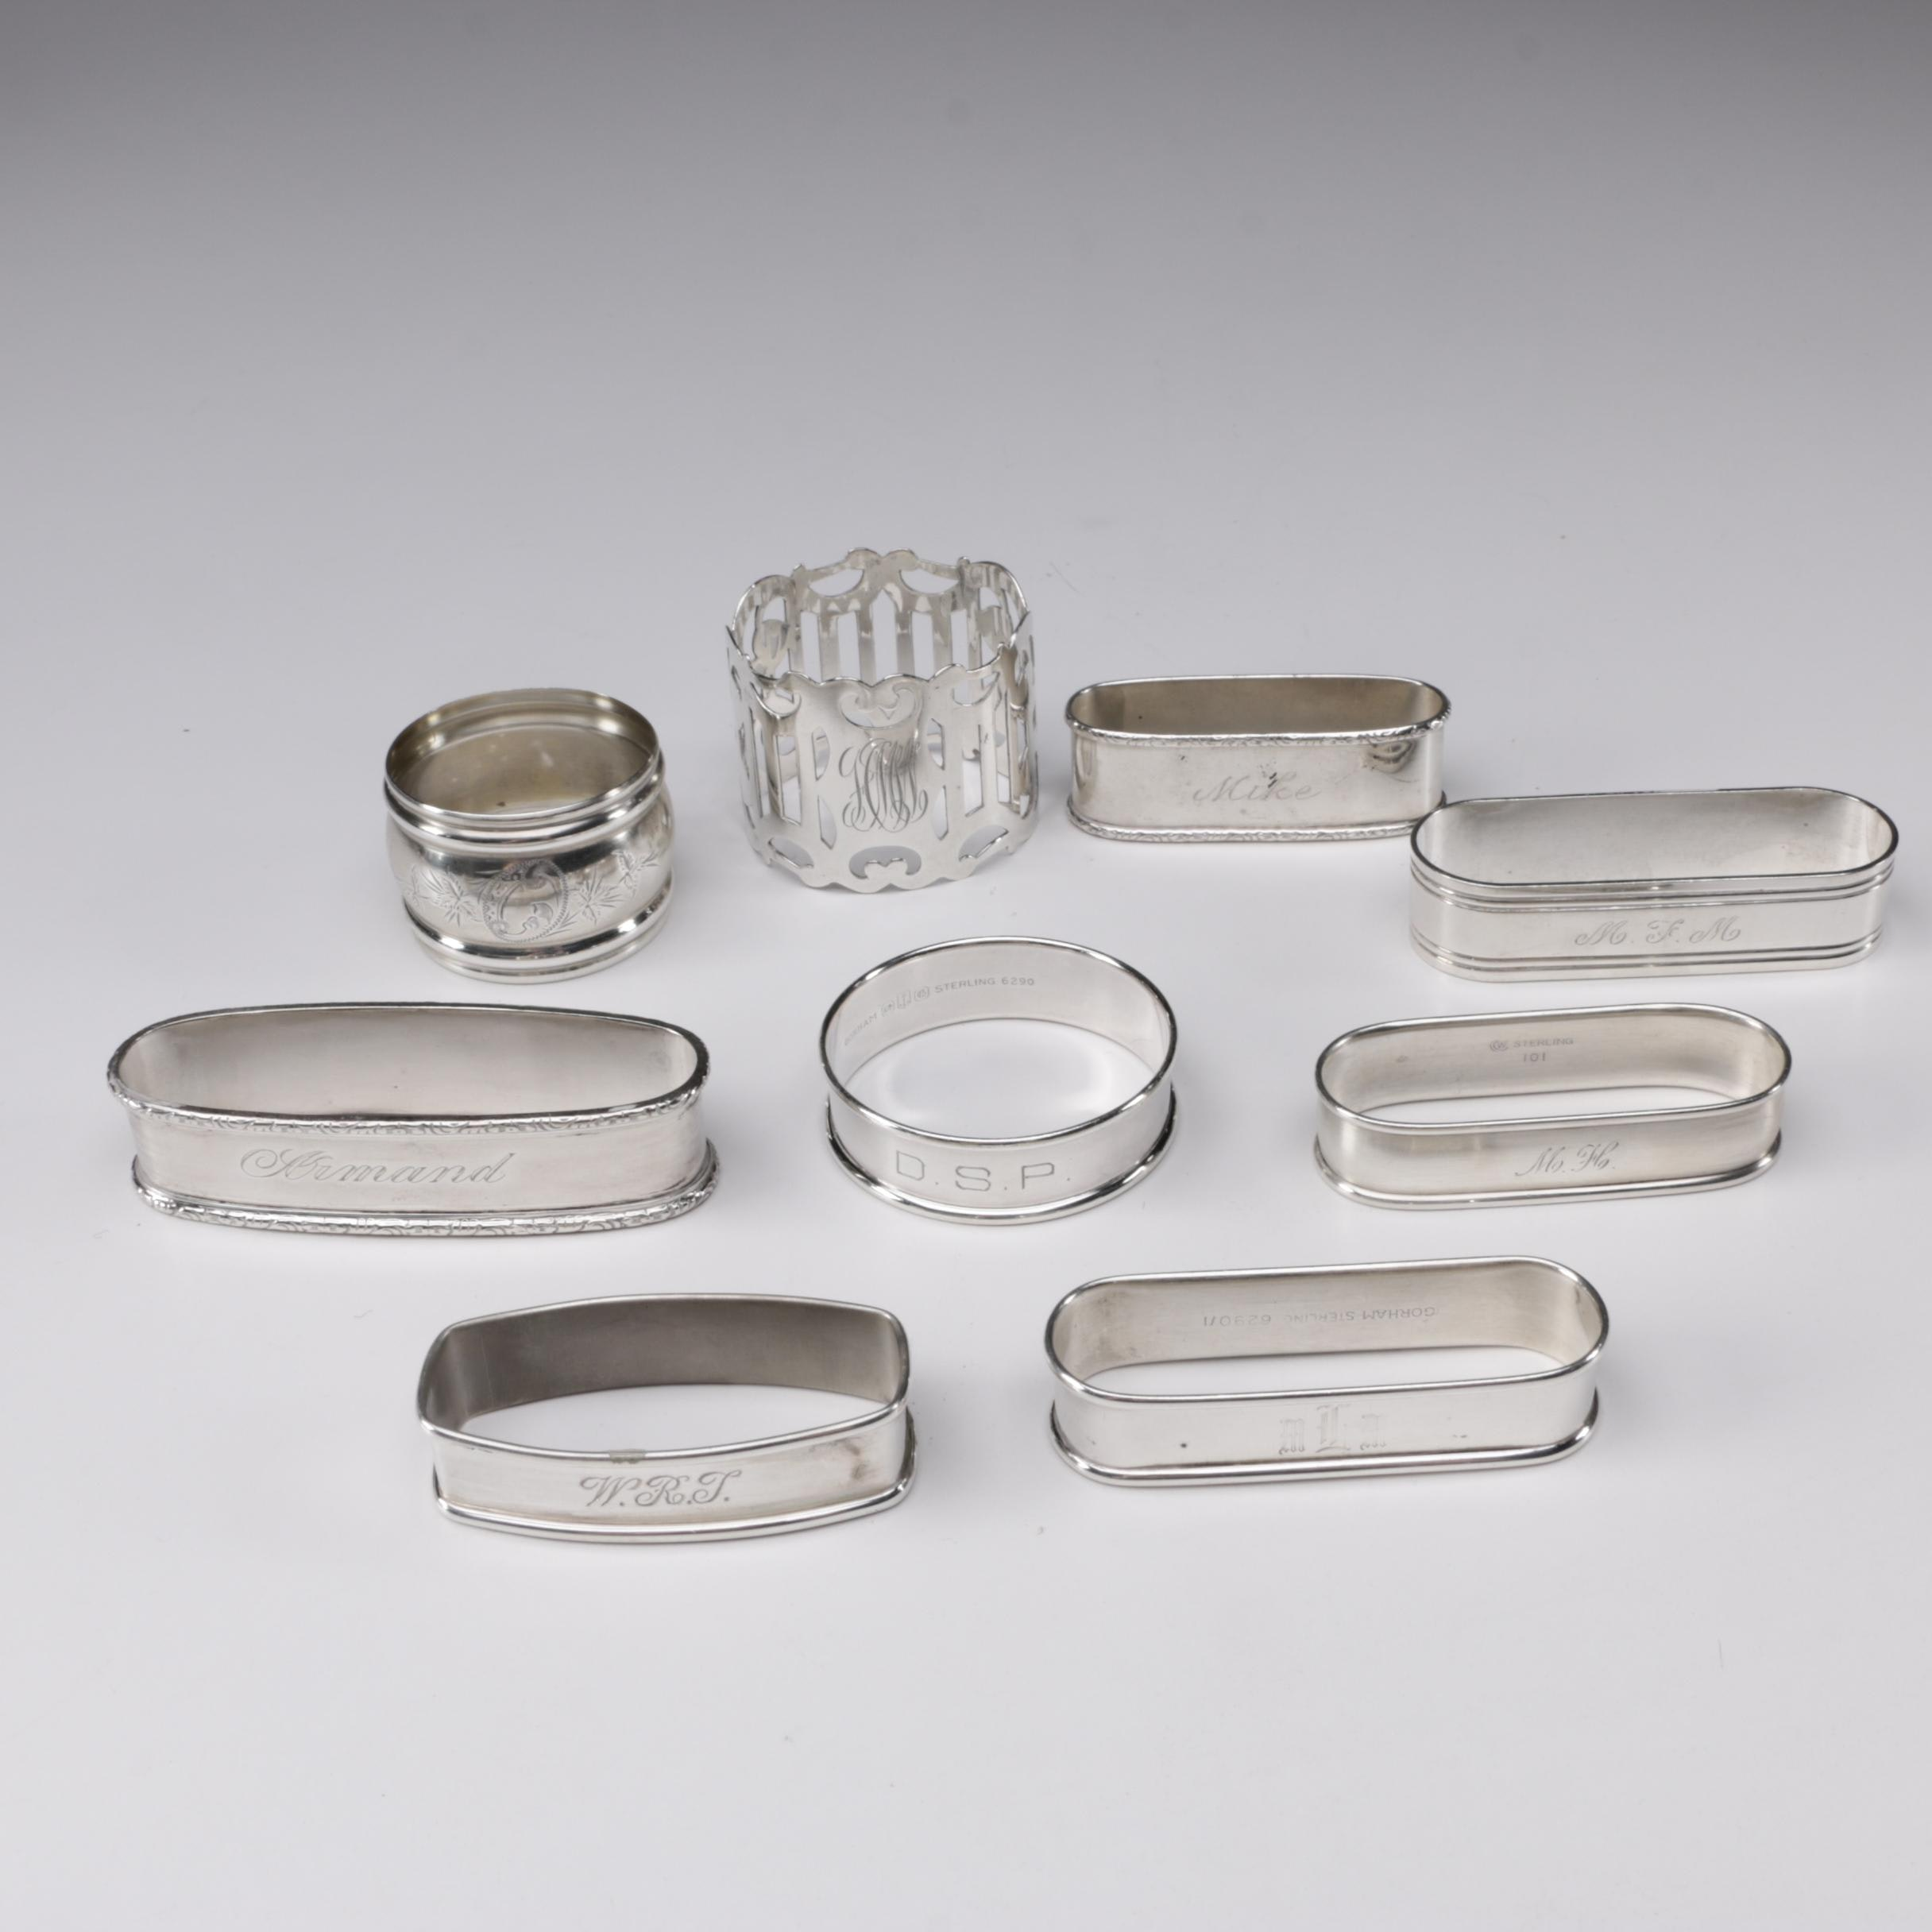 American Sterling Silver Napkin Rings Featuring Gorham, Early 20th Century